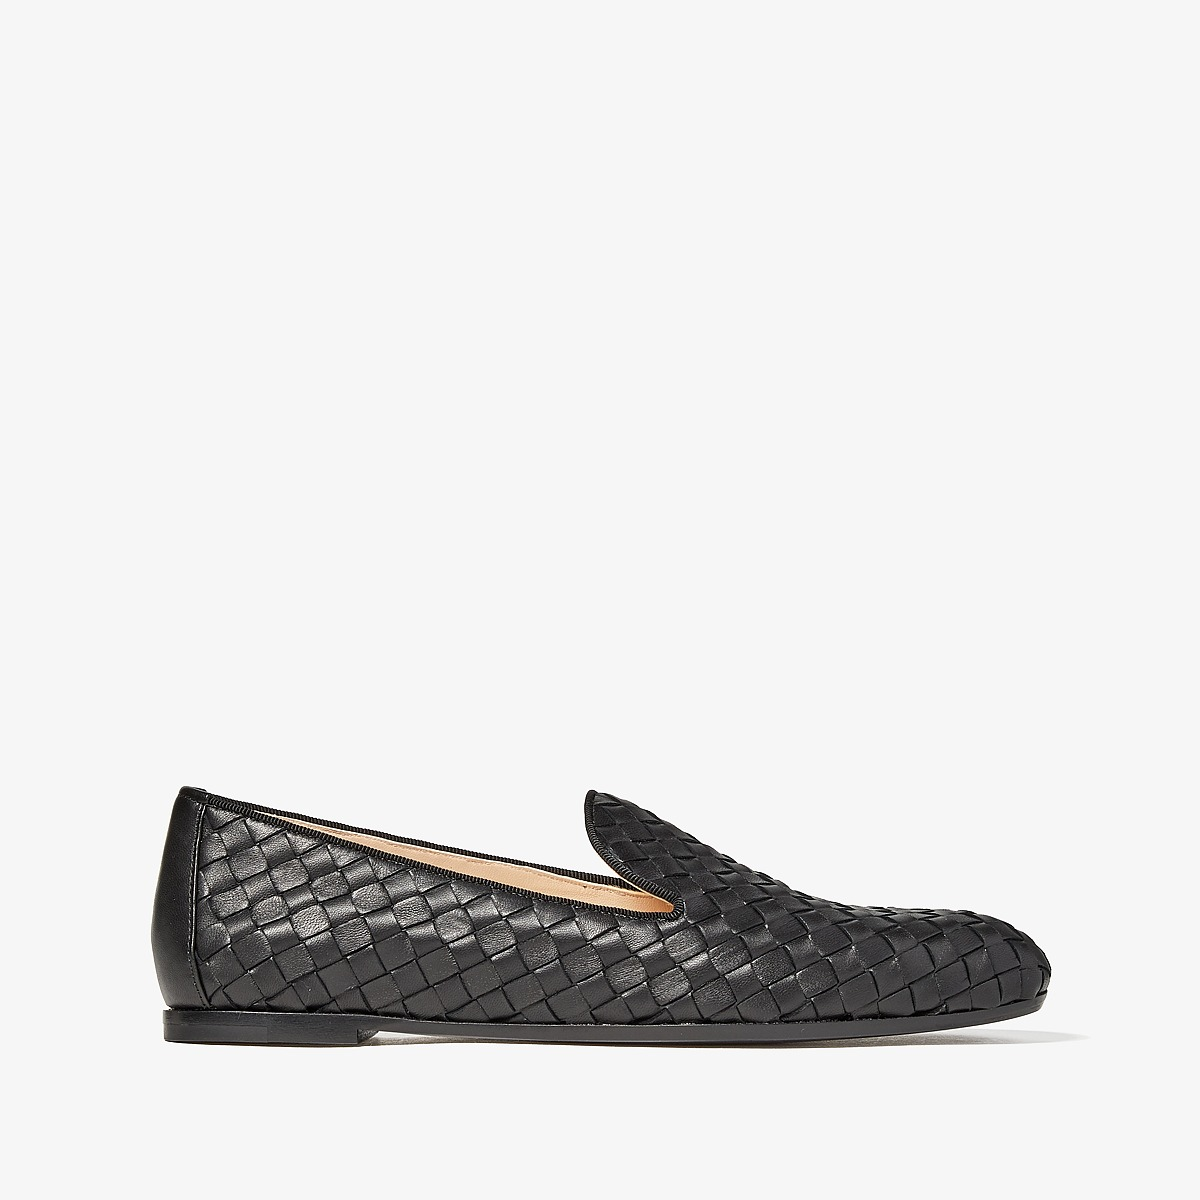 Bottega VenetaIntrecciato Loafer  (Black) Womens Slip on  Shoes